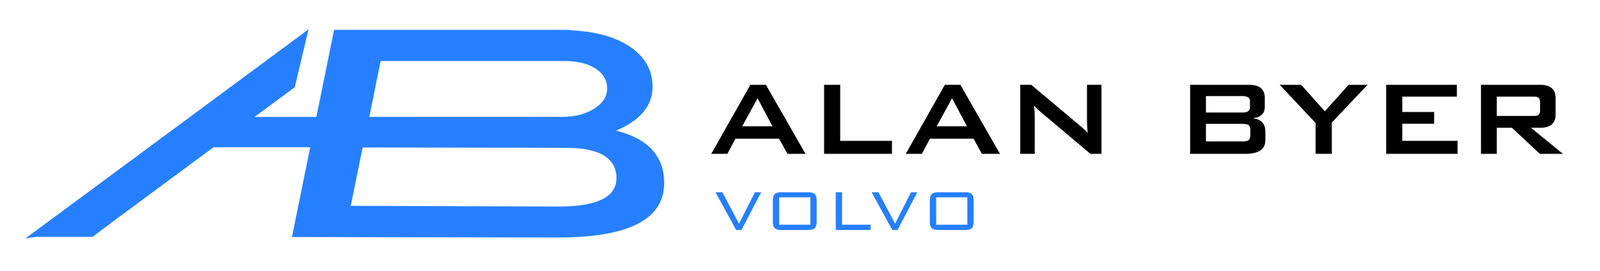 alan byer volvo - syracuse, ny: read consumer reviews, browse used